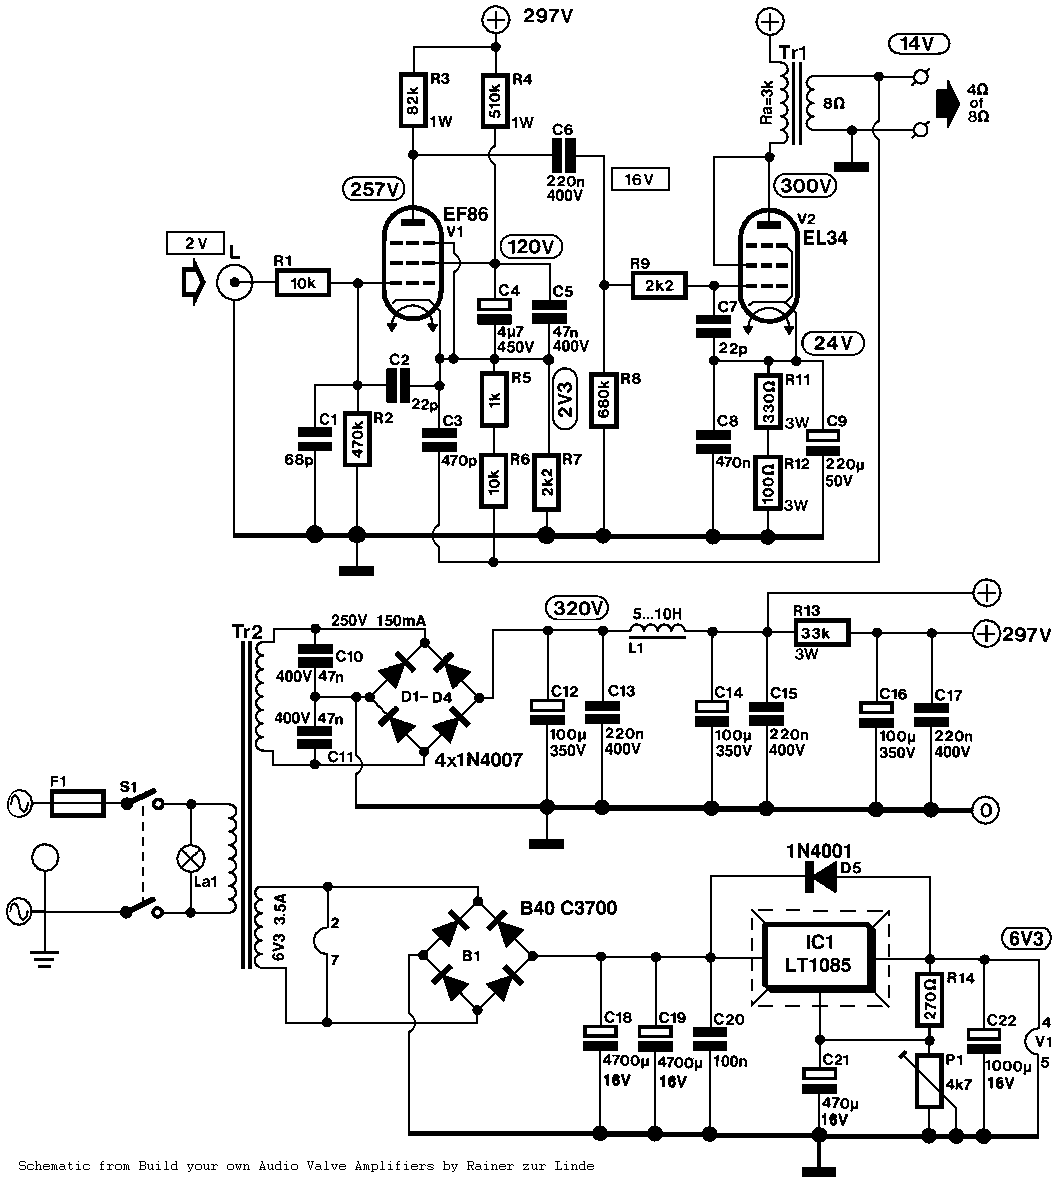 Tube Amplifier Circuit http://audiocircuit.blogspot.com/2013_01_01_archive.html